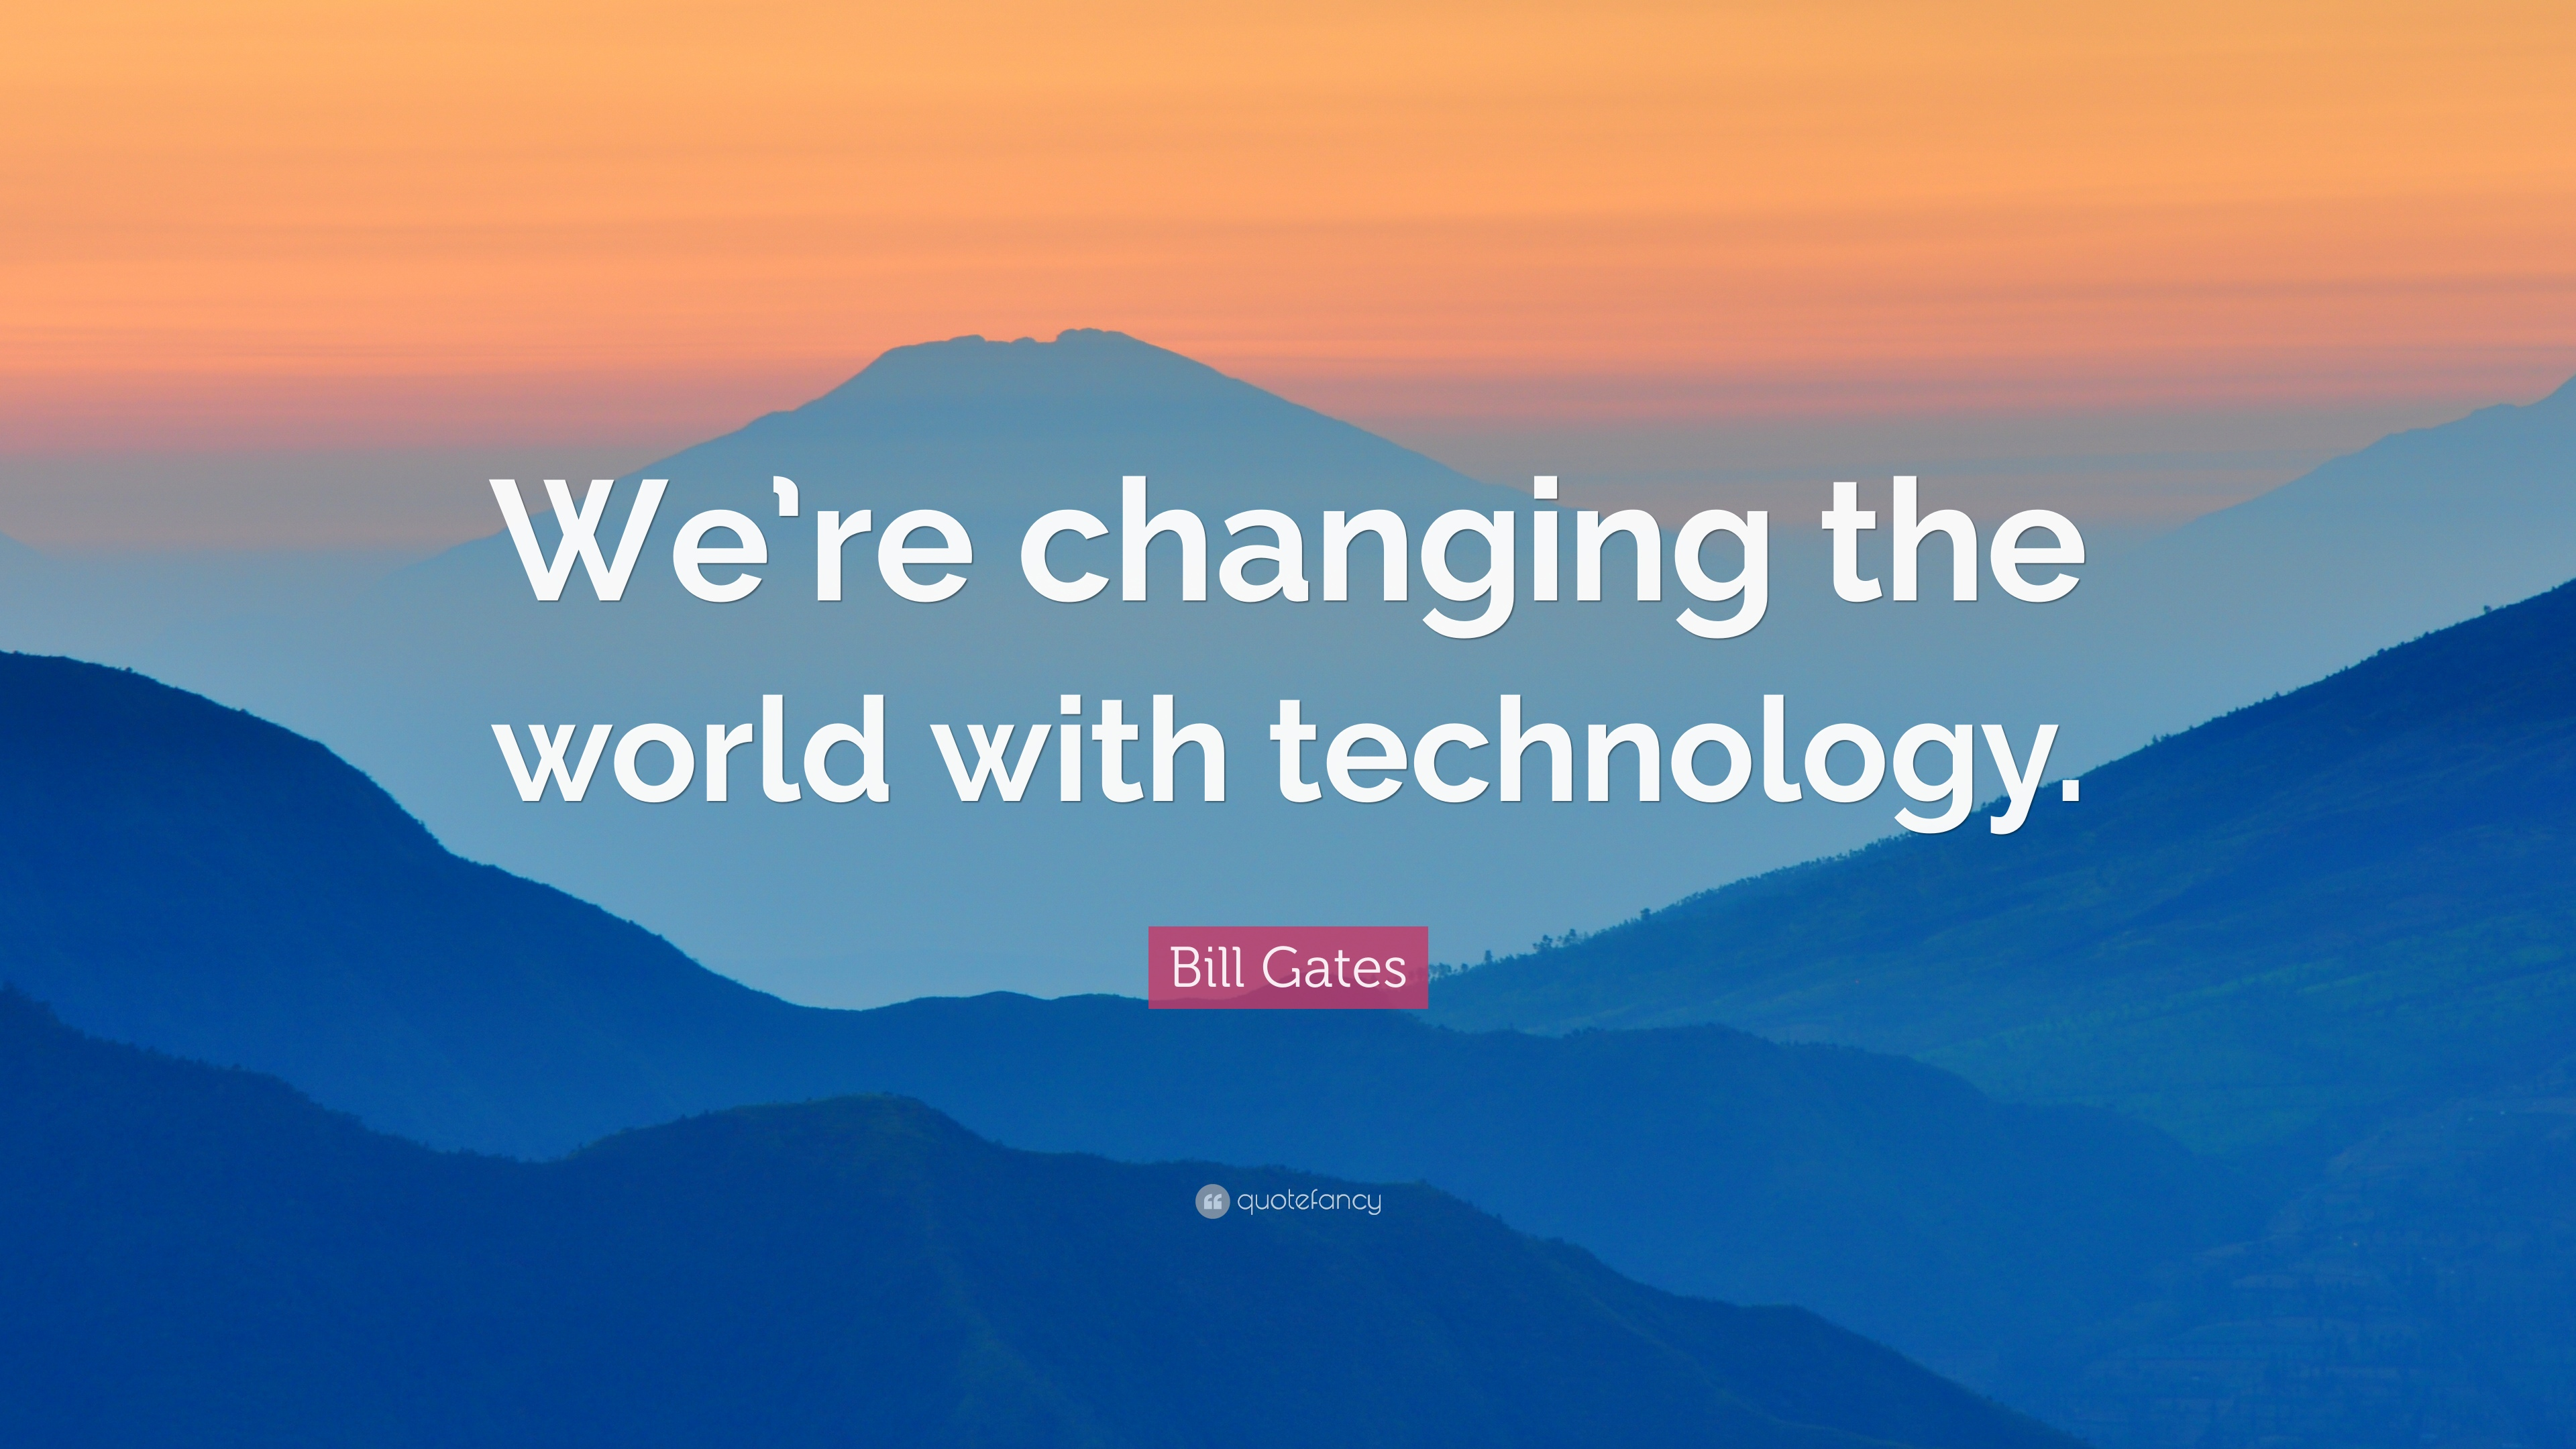 Technology Quotes Technology Quotes (40 wallpapers)   Quotefancy Technology Quotes